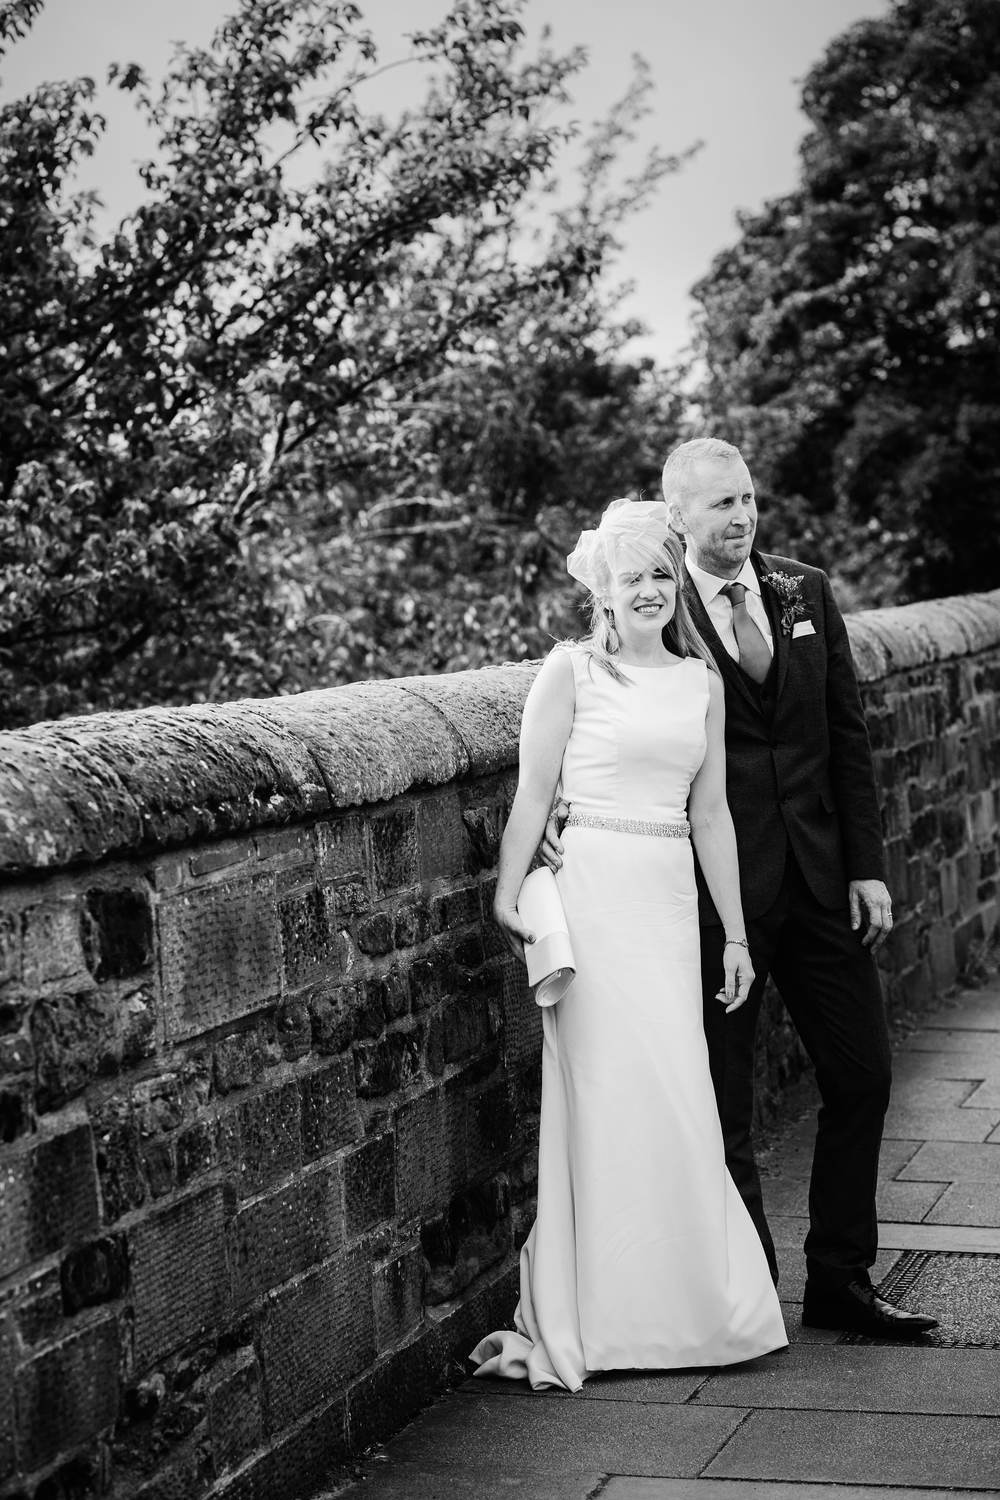 The bride and groom pose beside a wall outside the Tithe Barn, Carlisle, Cumbria in this black and white photograph